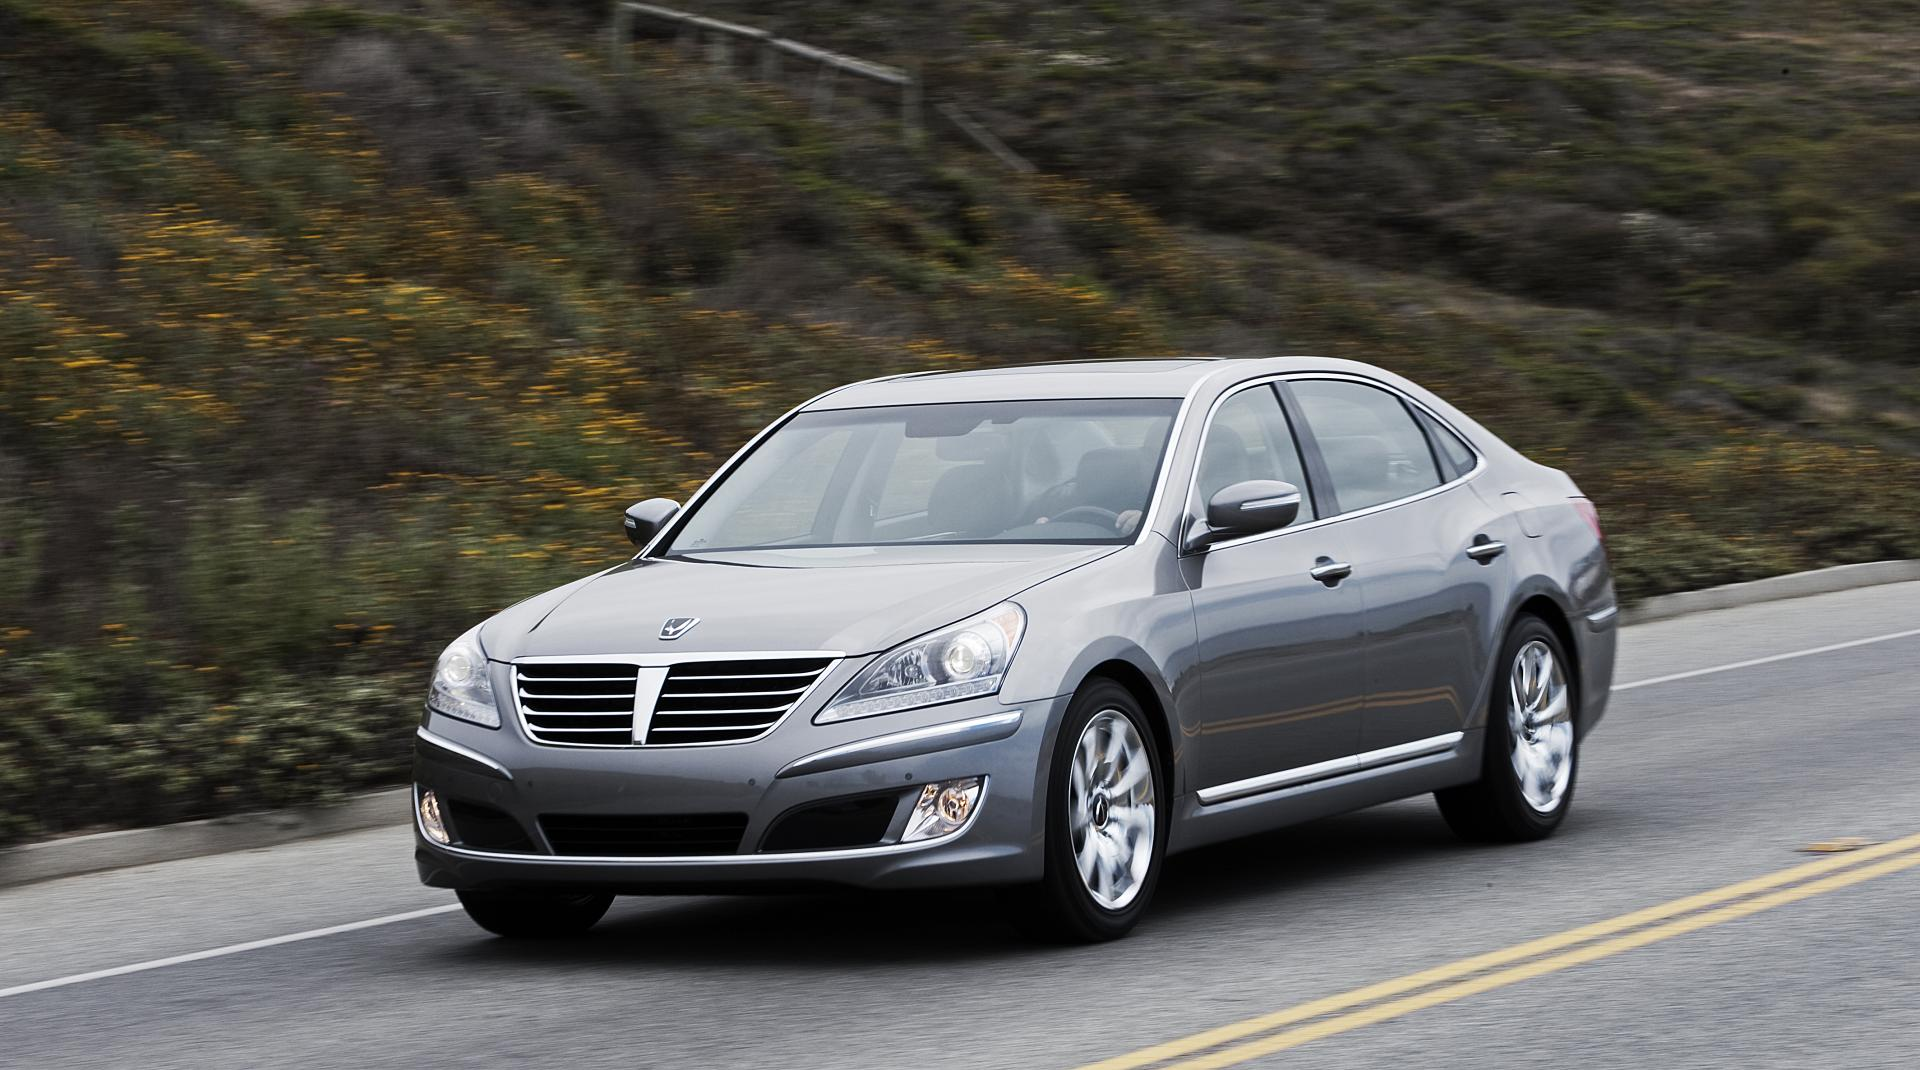 2012 hyundai equus technical specifications and data engine dimensions and mechanical details. Black Bedroom Furniture Sets. Home Design Ideas